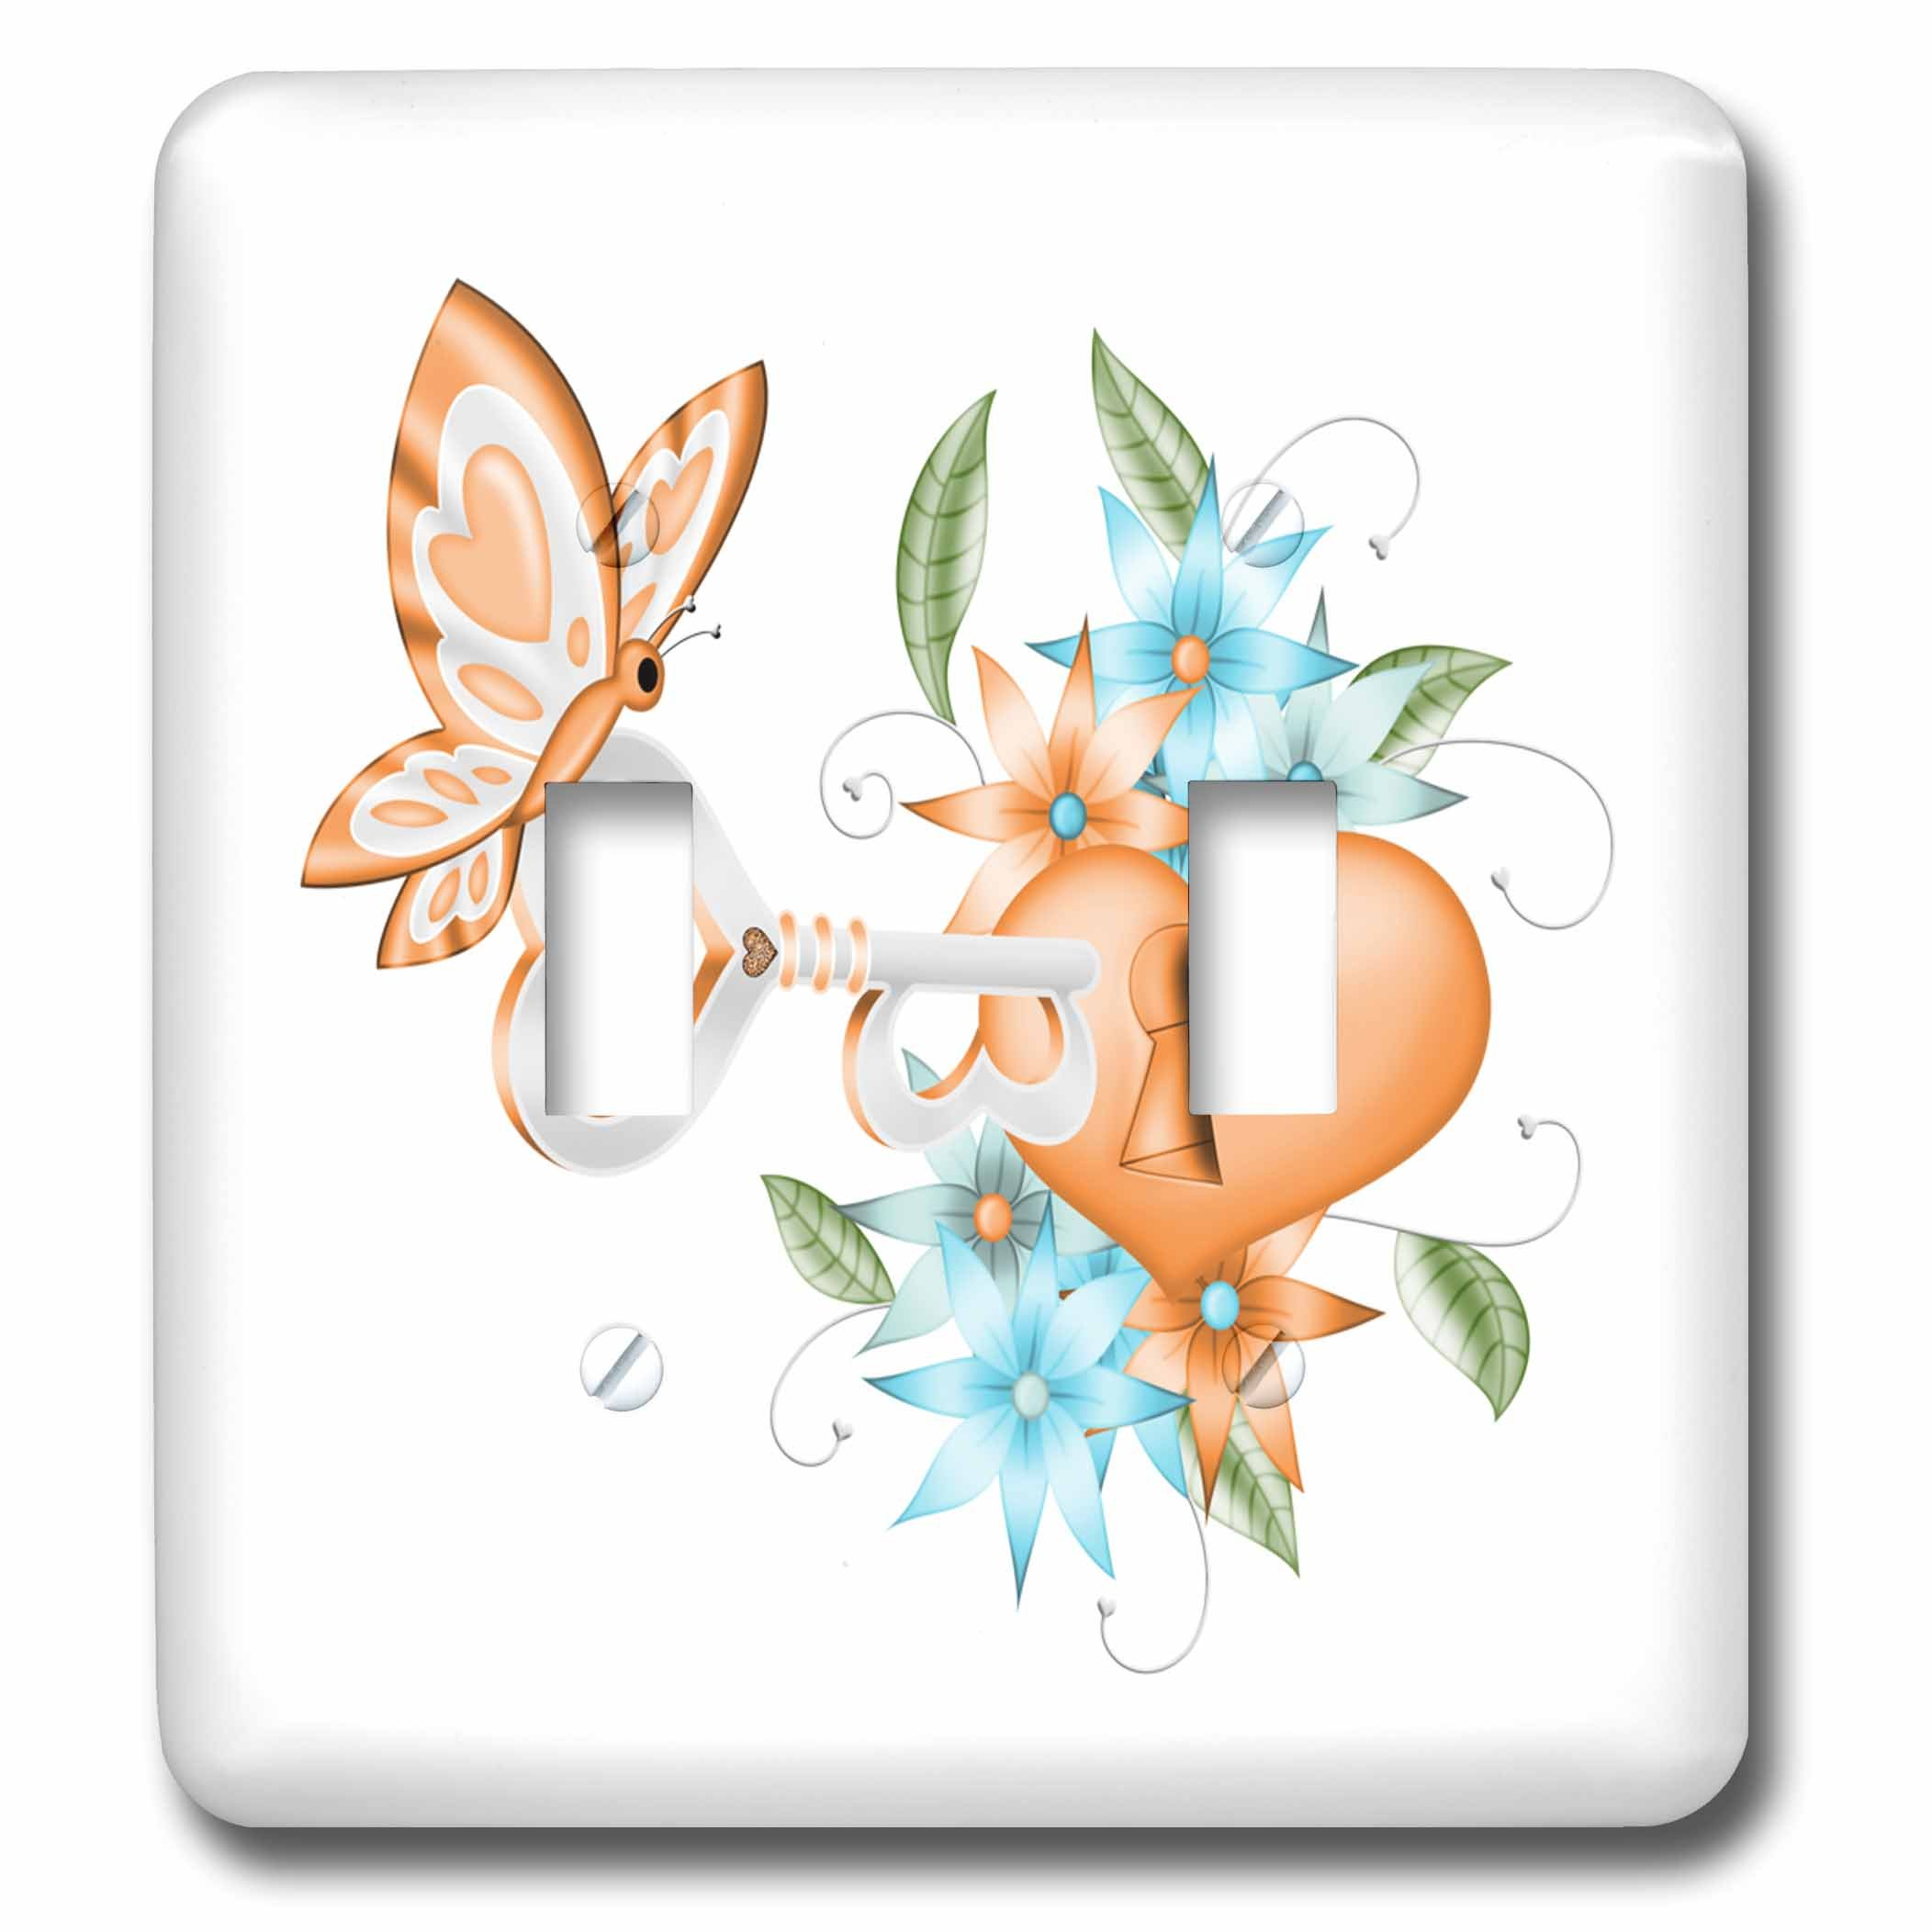 3dRose Anne Marie Baugh - Illustrations - Pretty Orange Butterfly With A Floral Lock and Key Illustration - Light Switch Covers - double toggle switch (lsp_264915_2)